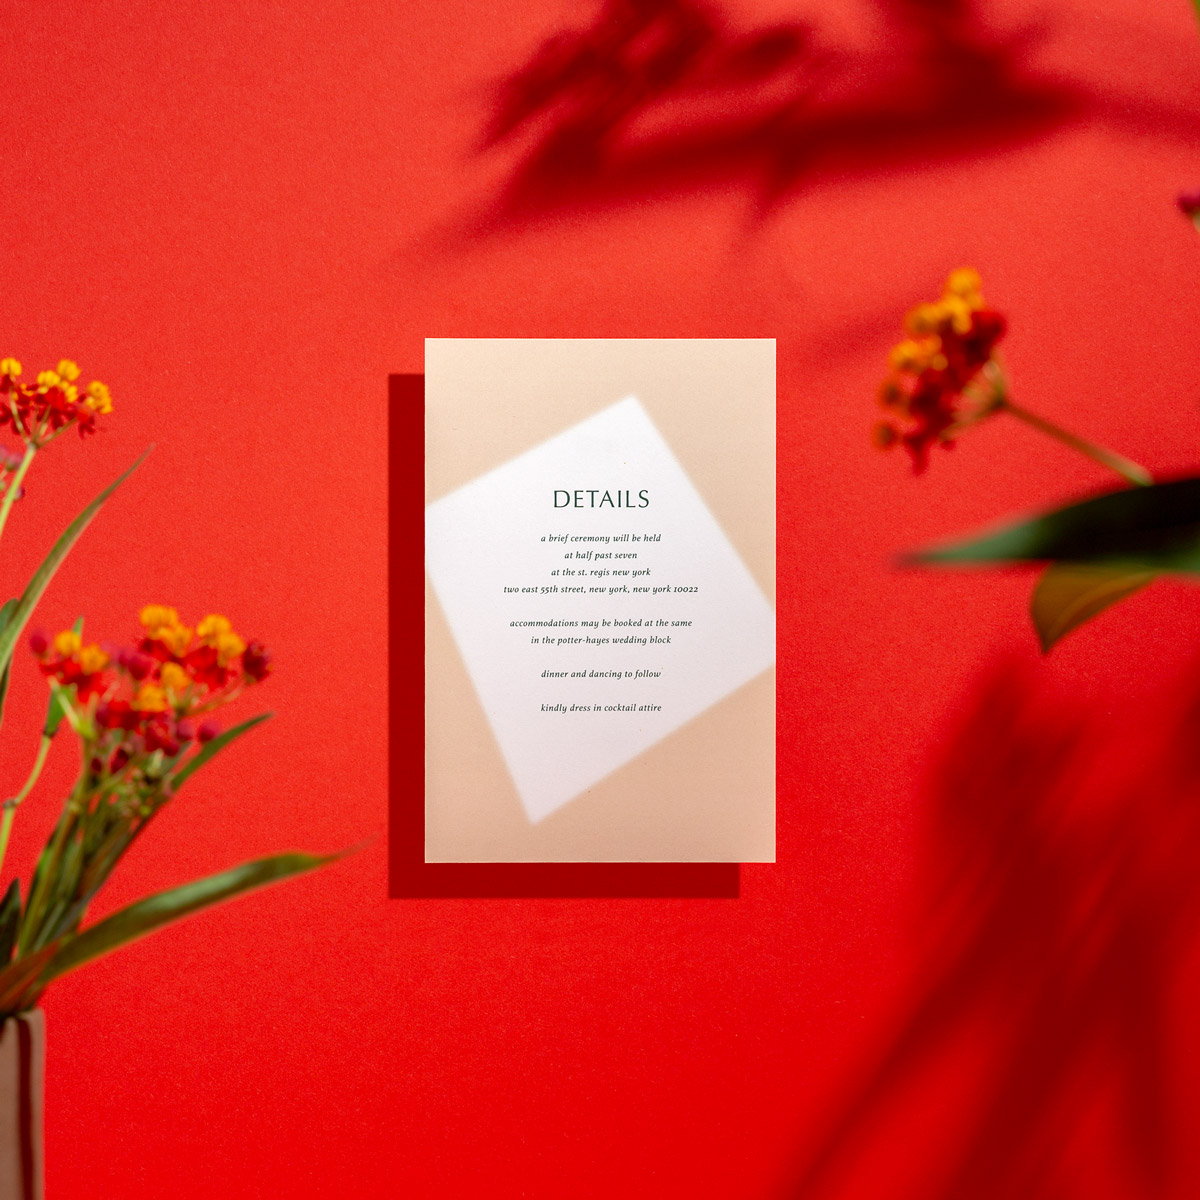 The Flor info card keeps it simple and elevated for fine celebrations